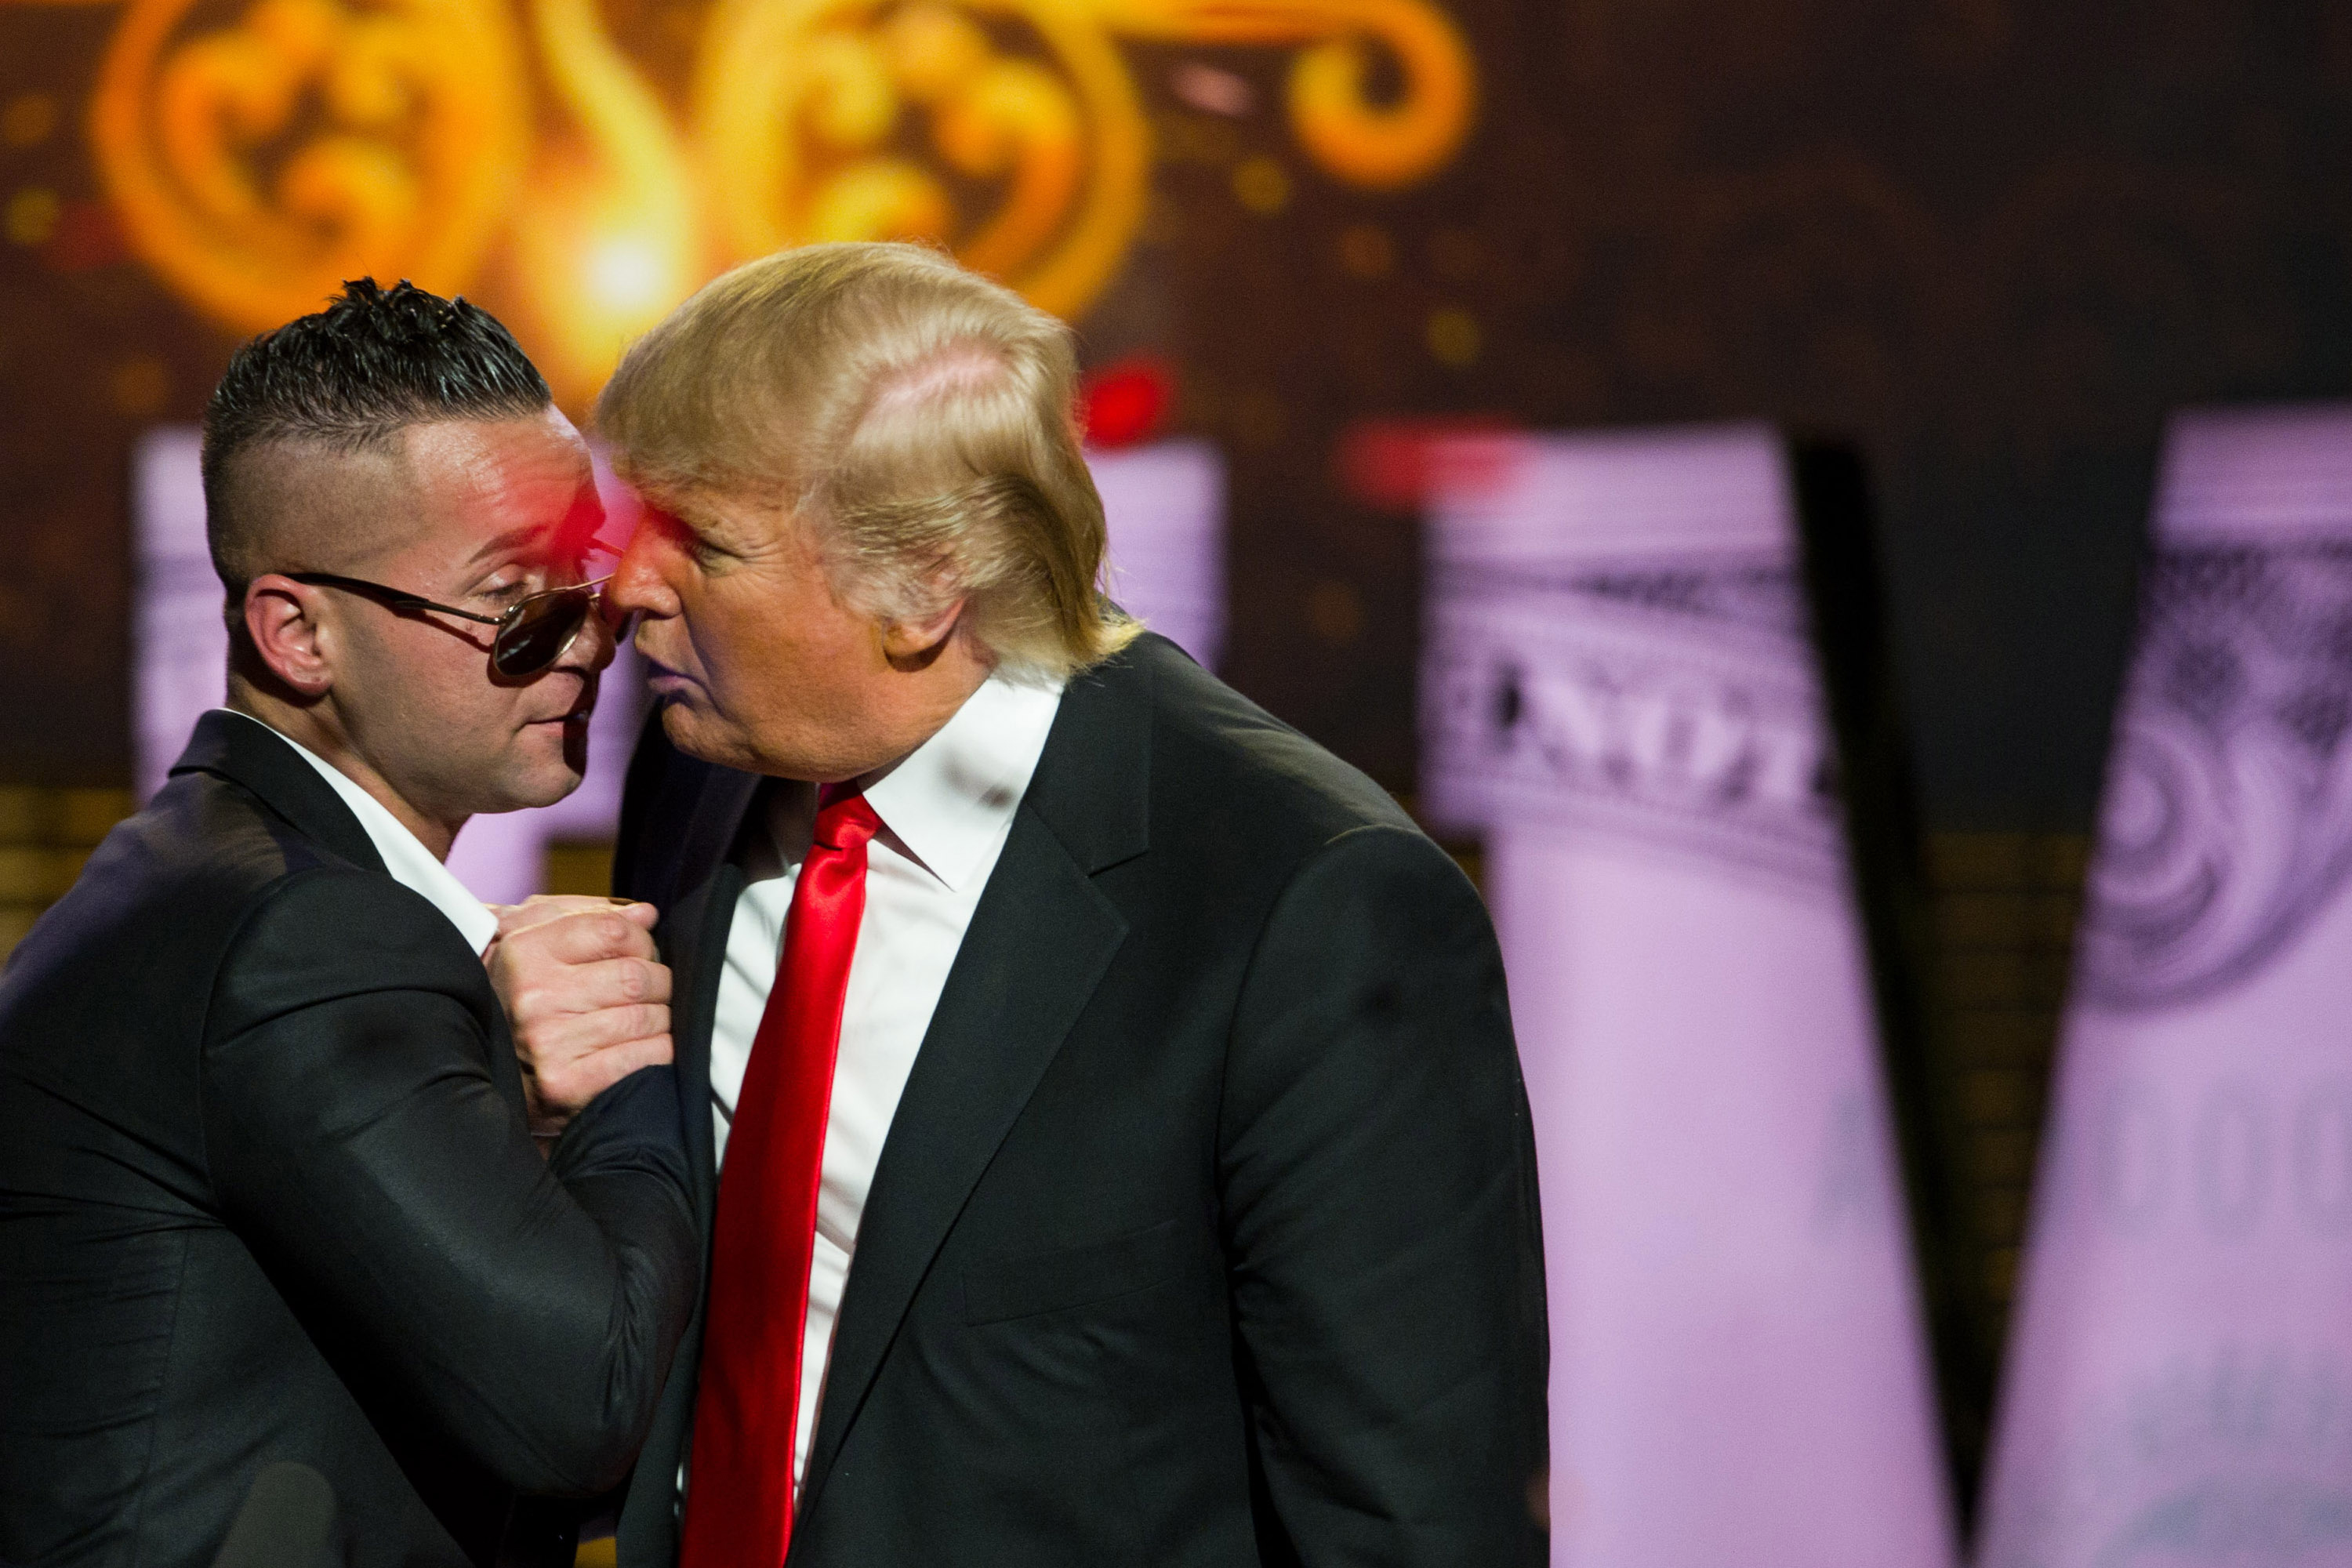 "Mike ""The Situation"" Sorrentino, left, and Donald Trump appear onstage at the Comedy Central Roast of Donald Trump in New York on March 9, 2011."